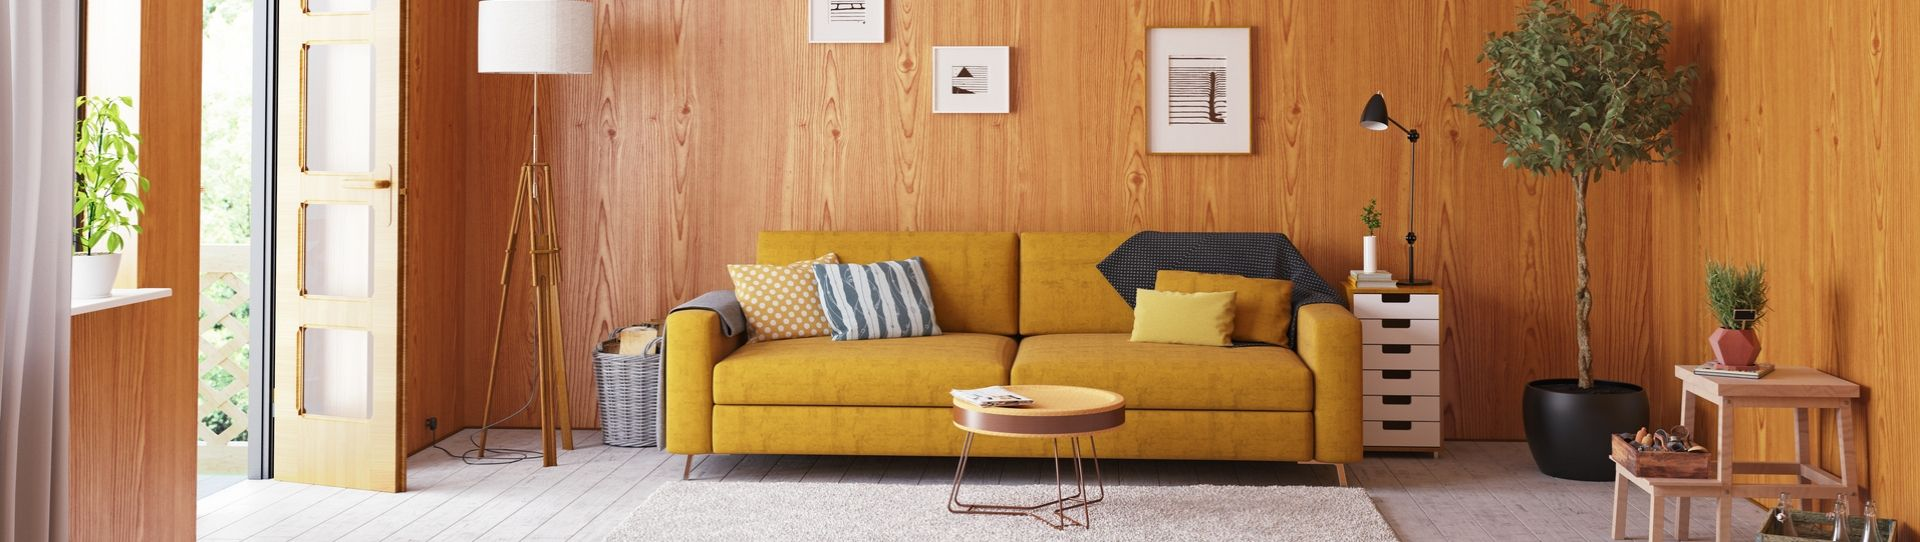 Decorative plywood that gives attractive look to your home | Wood and Veneers